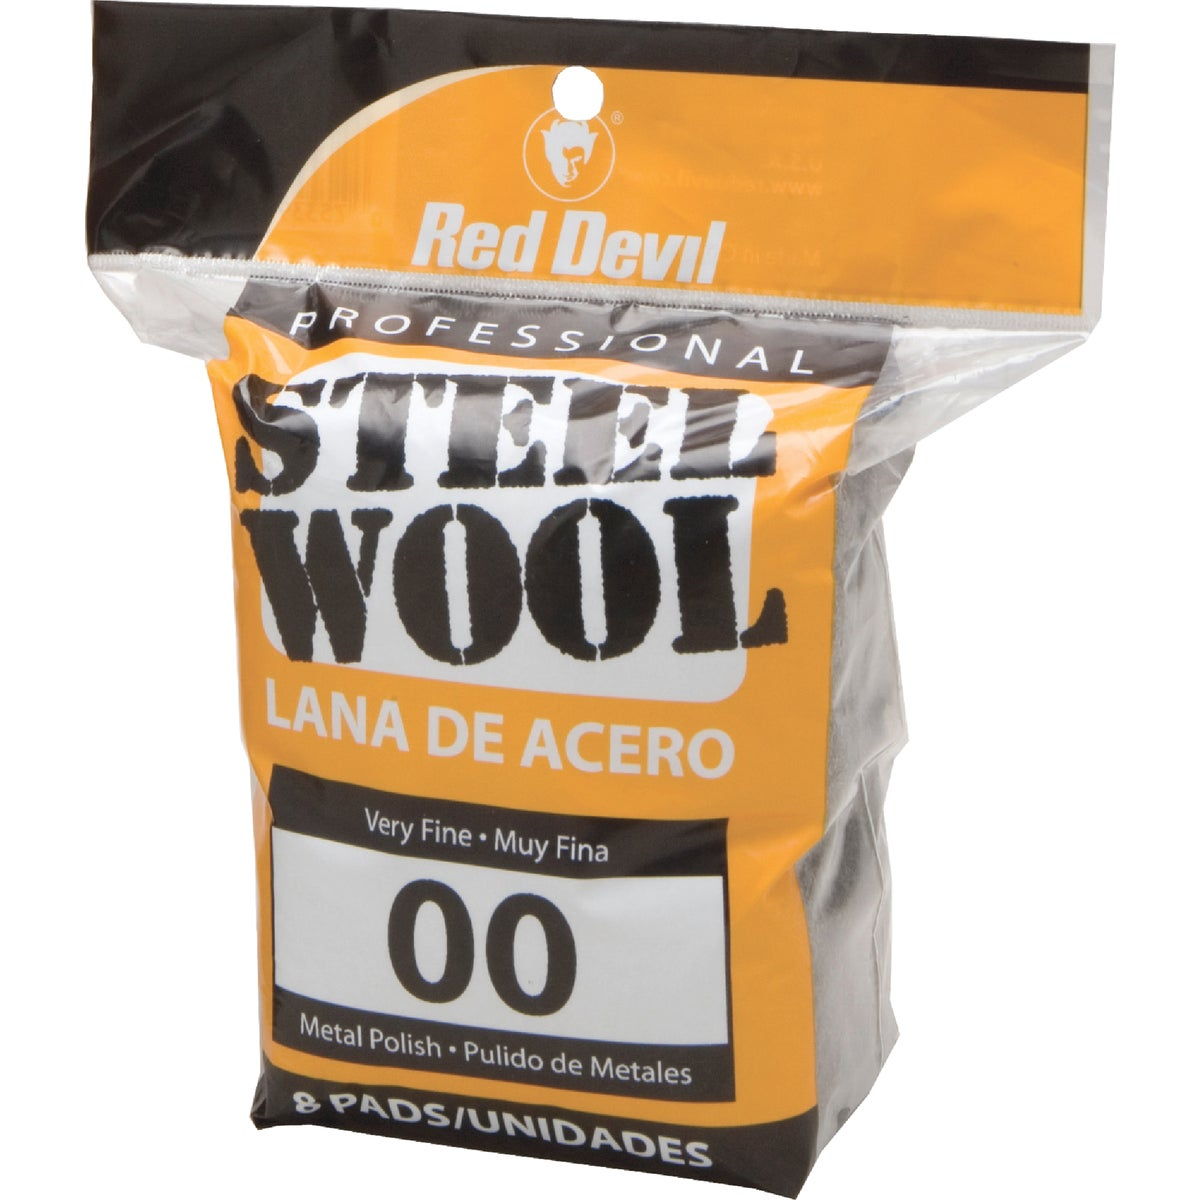 8PK #00 STEEL WOOL - 0322 by Red Devil